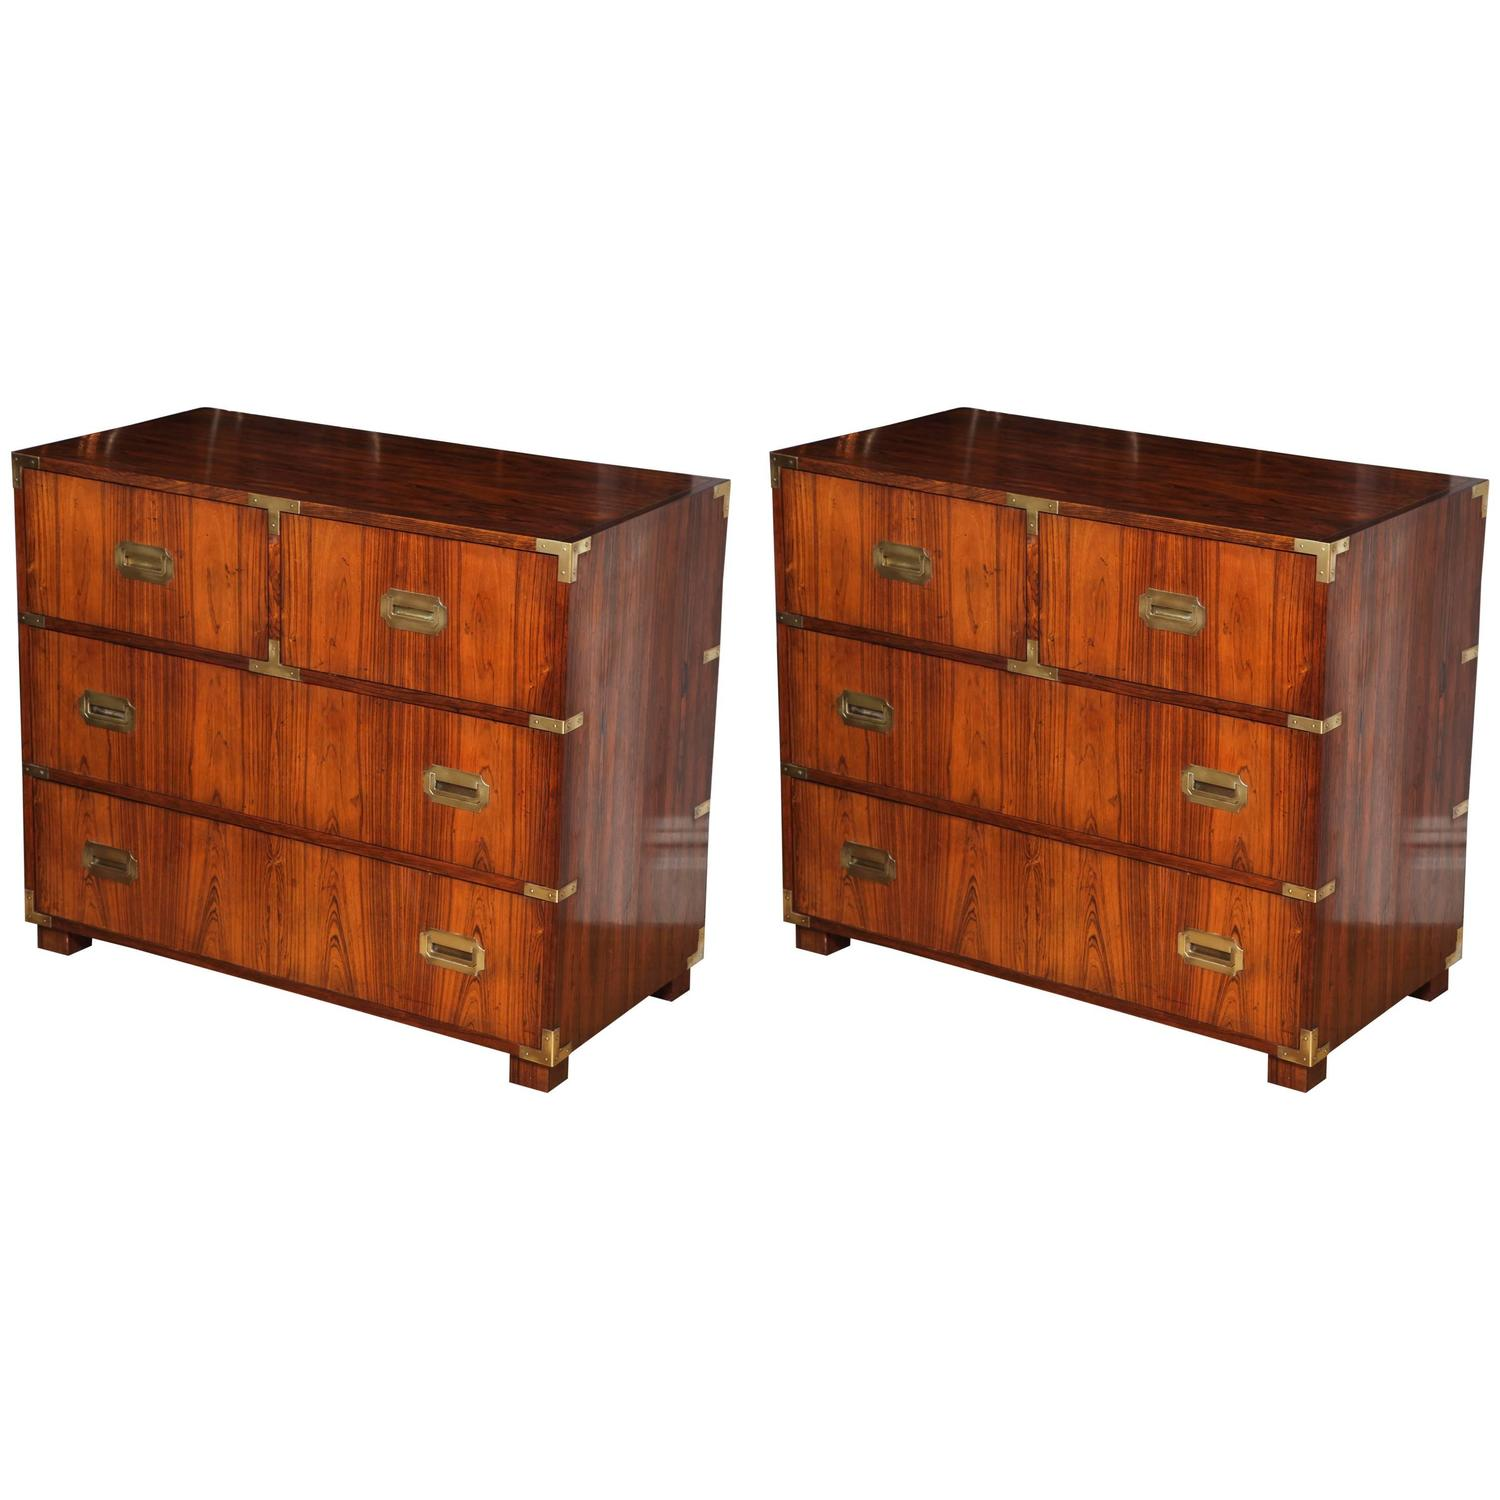 Pair Of Rosewood Anglo Indian Style Campaign Chests At 1stdibs